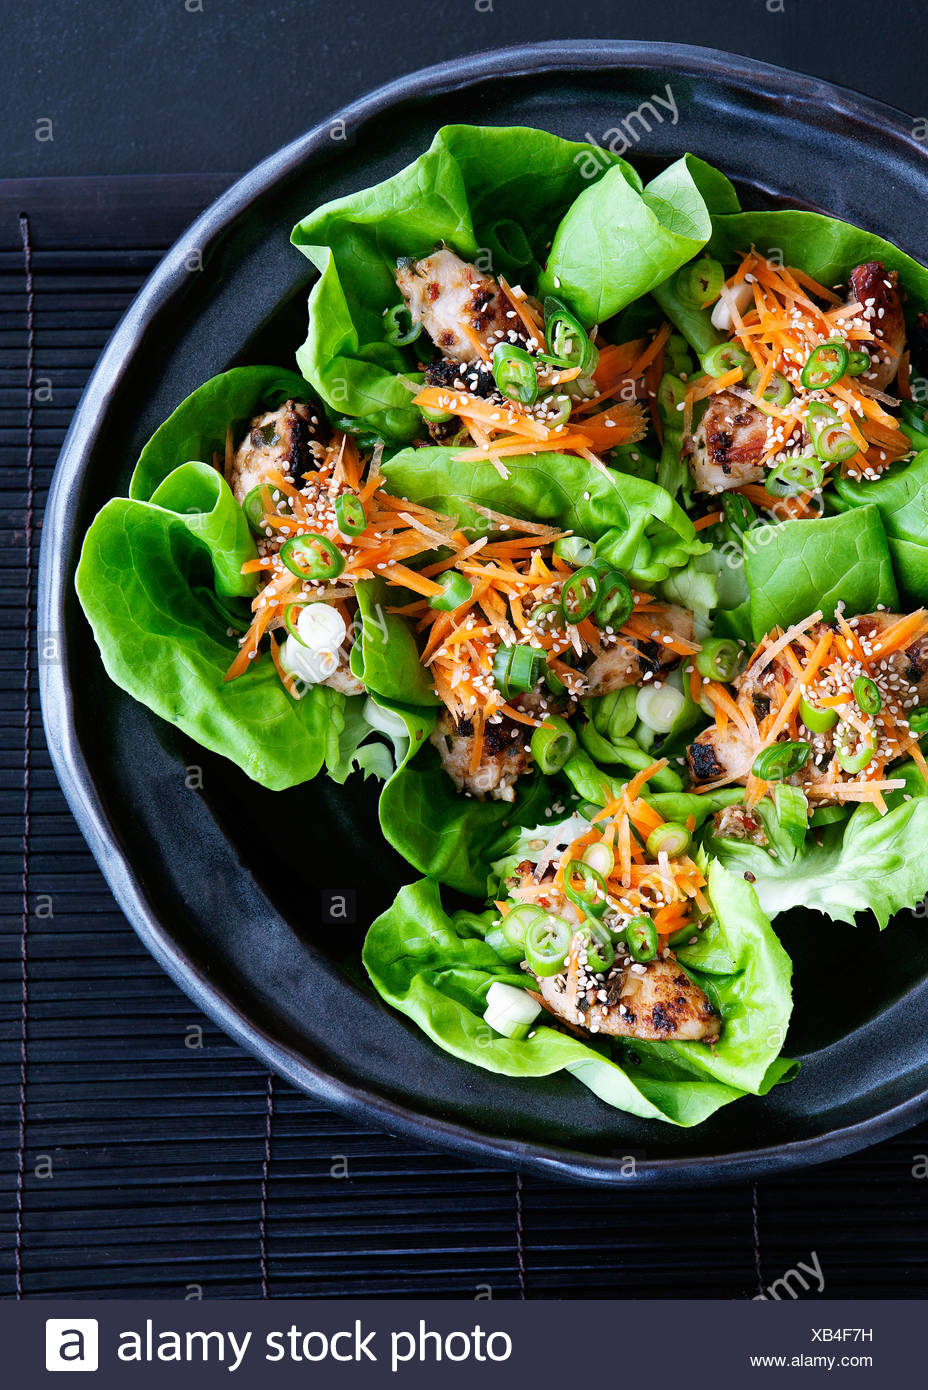 Bowl of salad wraps with lettuce - Stock Image